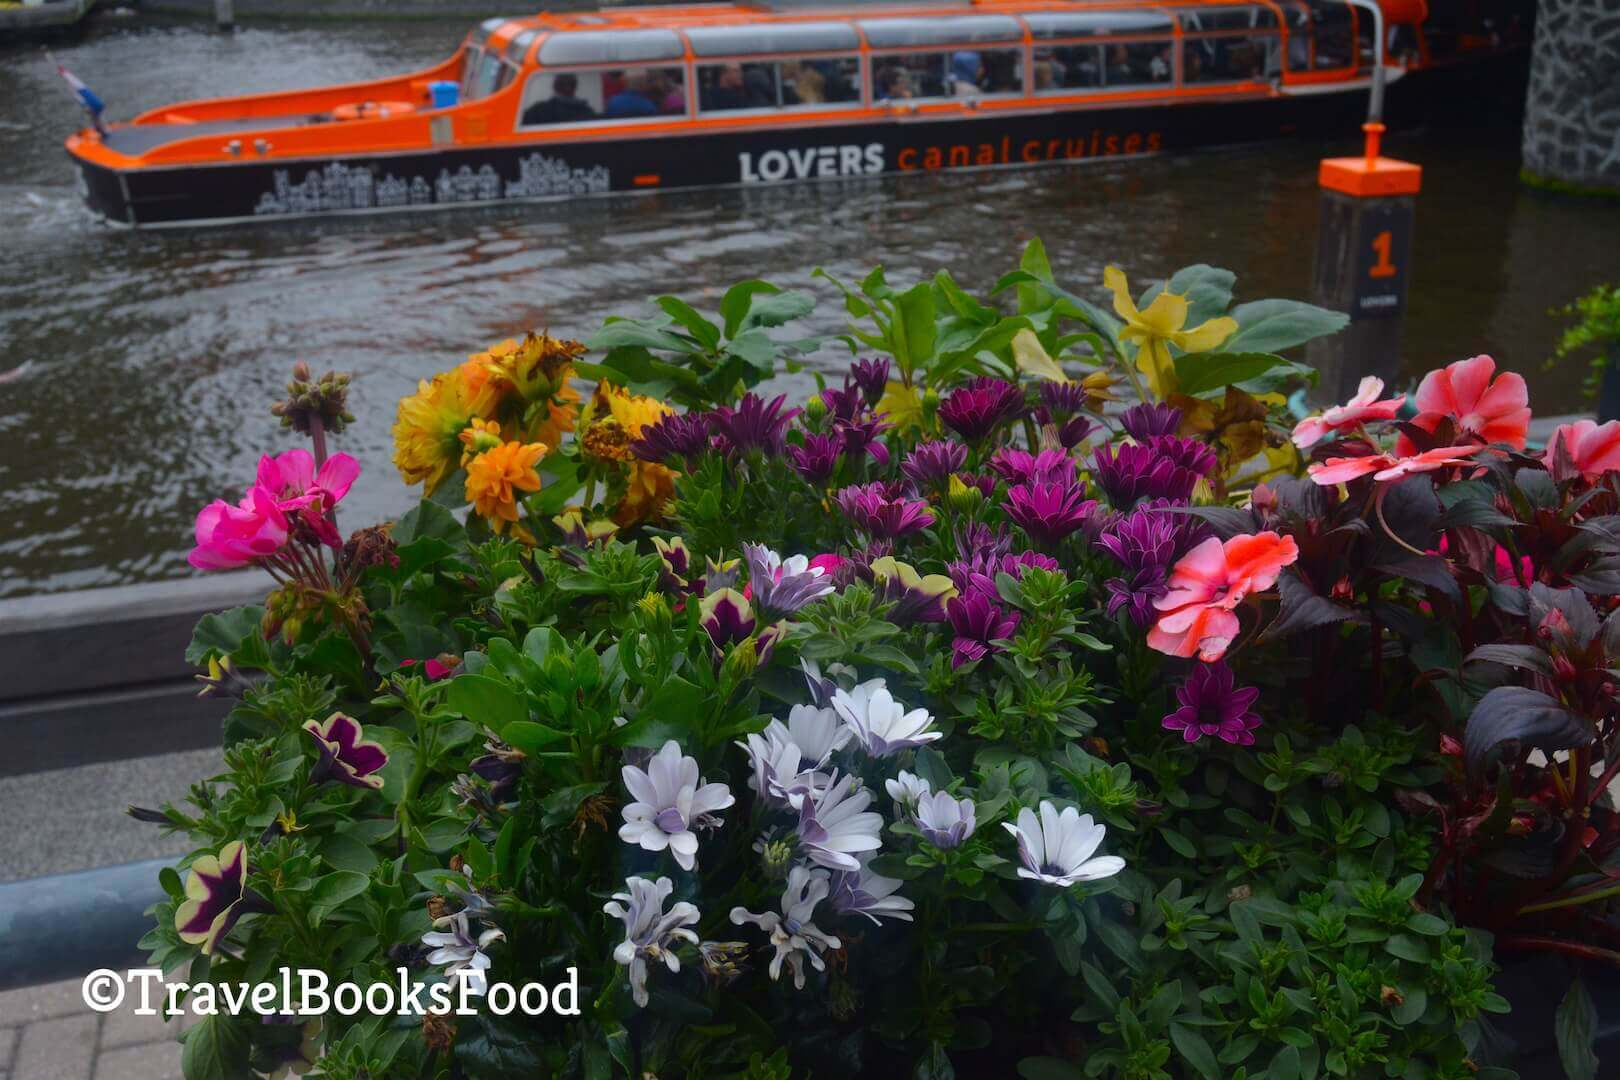 Flower basket overlooking a canal cruise boat in Amsterdam Canals